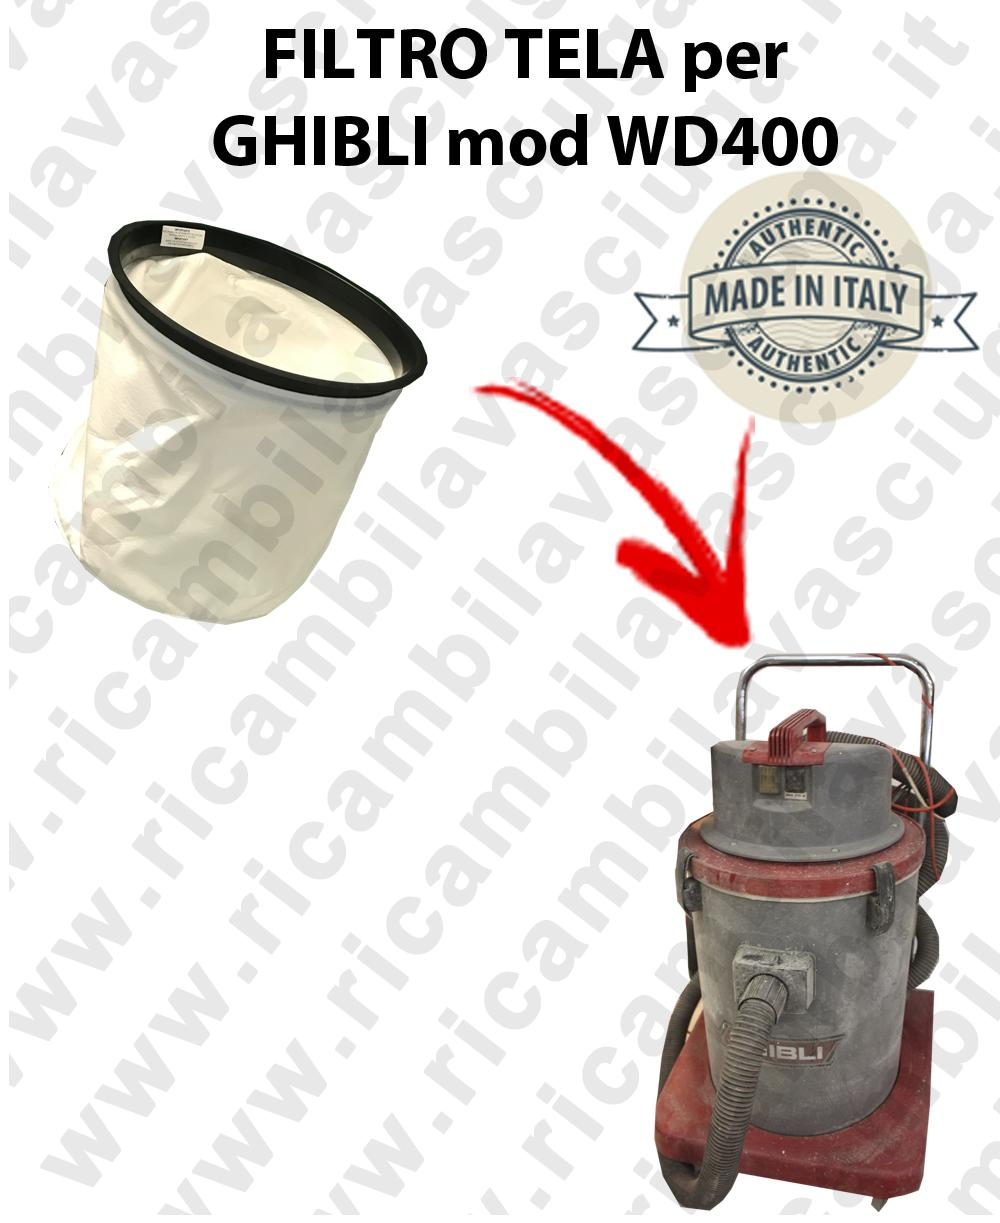 Canvas filter for vacuum cleaner GHIBLI model WD400